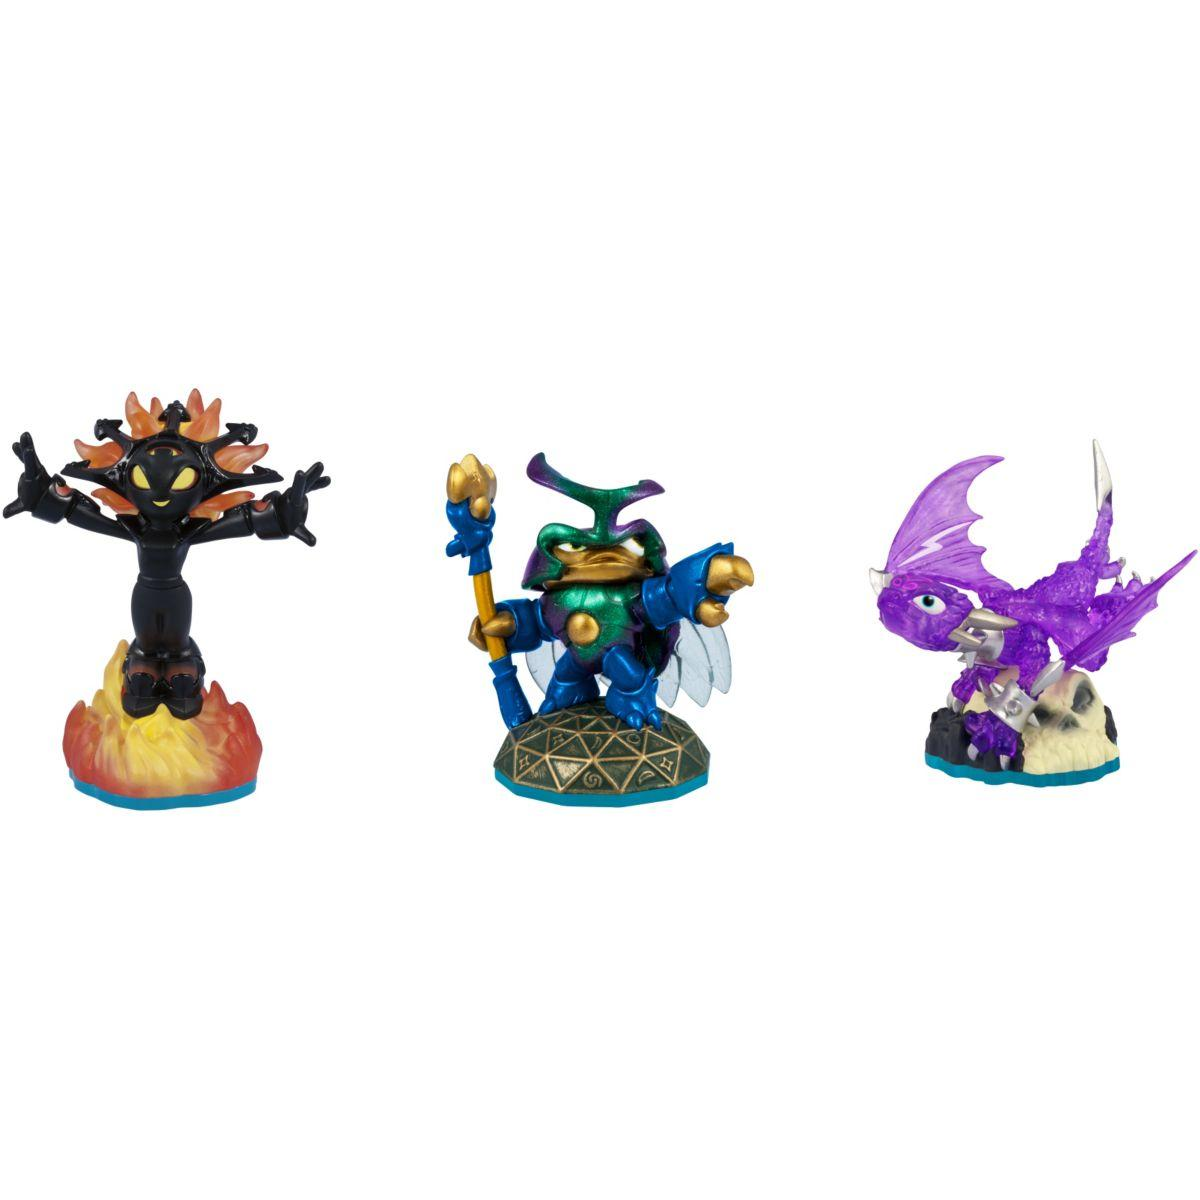 Figurine activision pack 3 figurines cha - 2% de remise imm�diate avec le code : noel2 (photo)